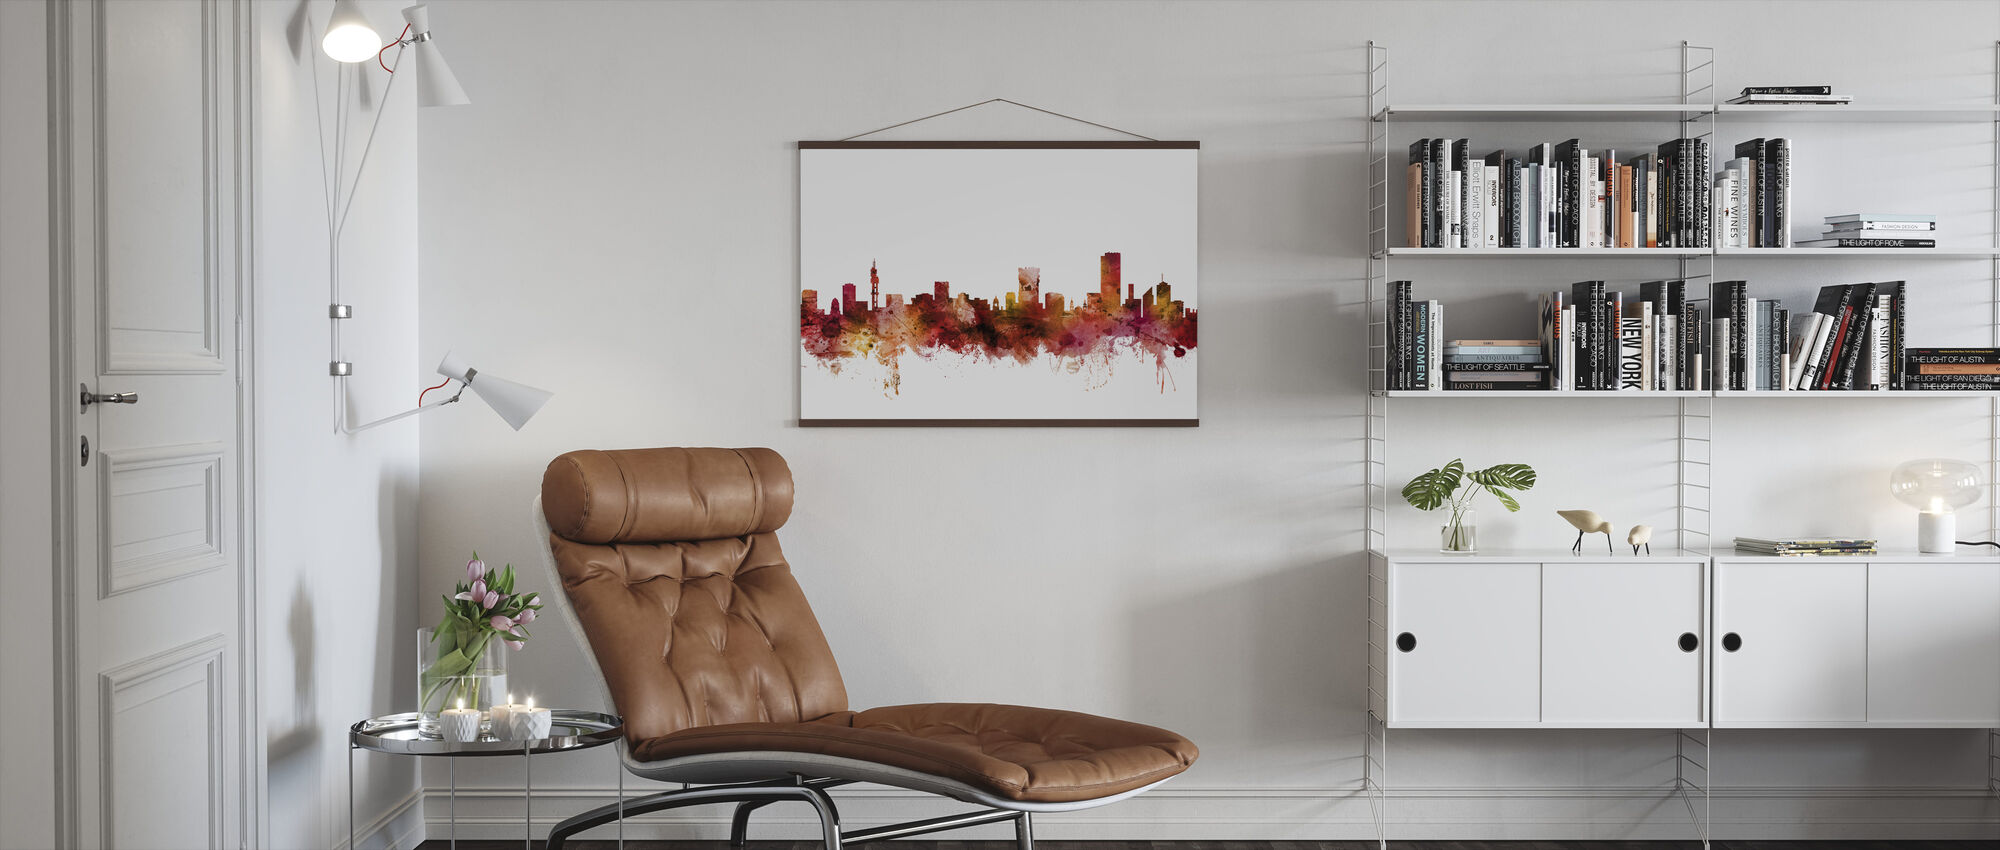 Pretoria South Africa Skyline - Poster - Living Room